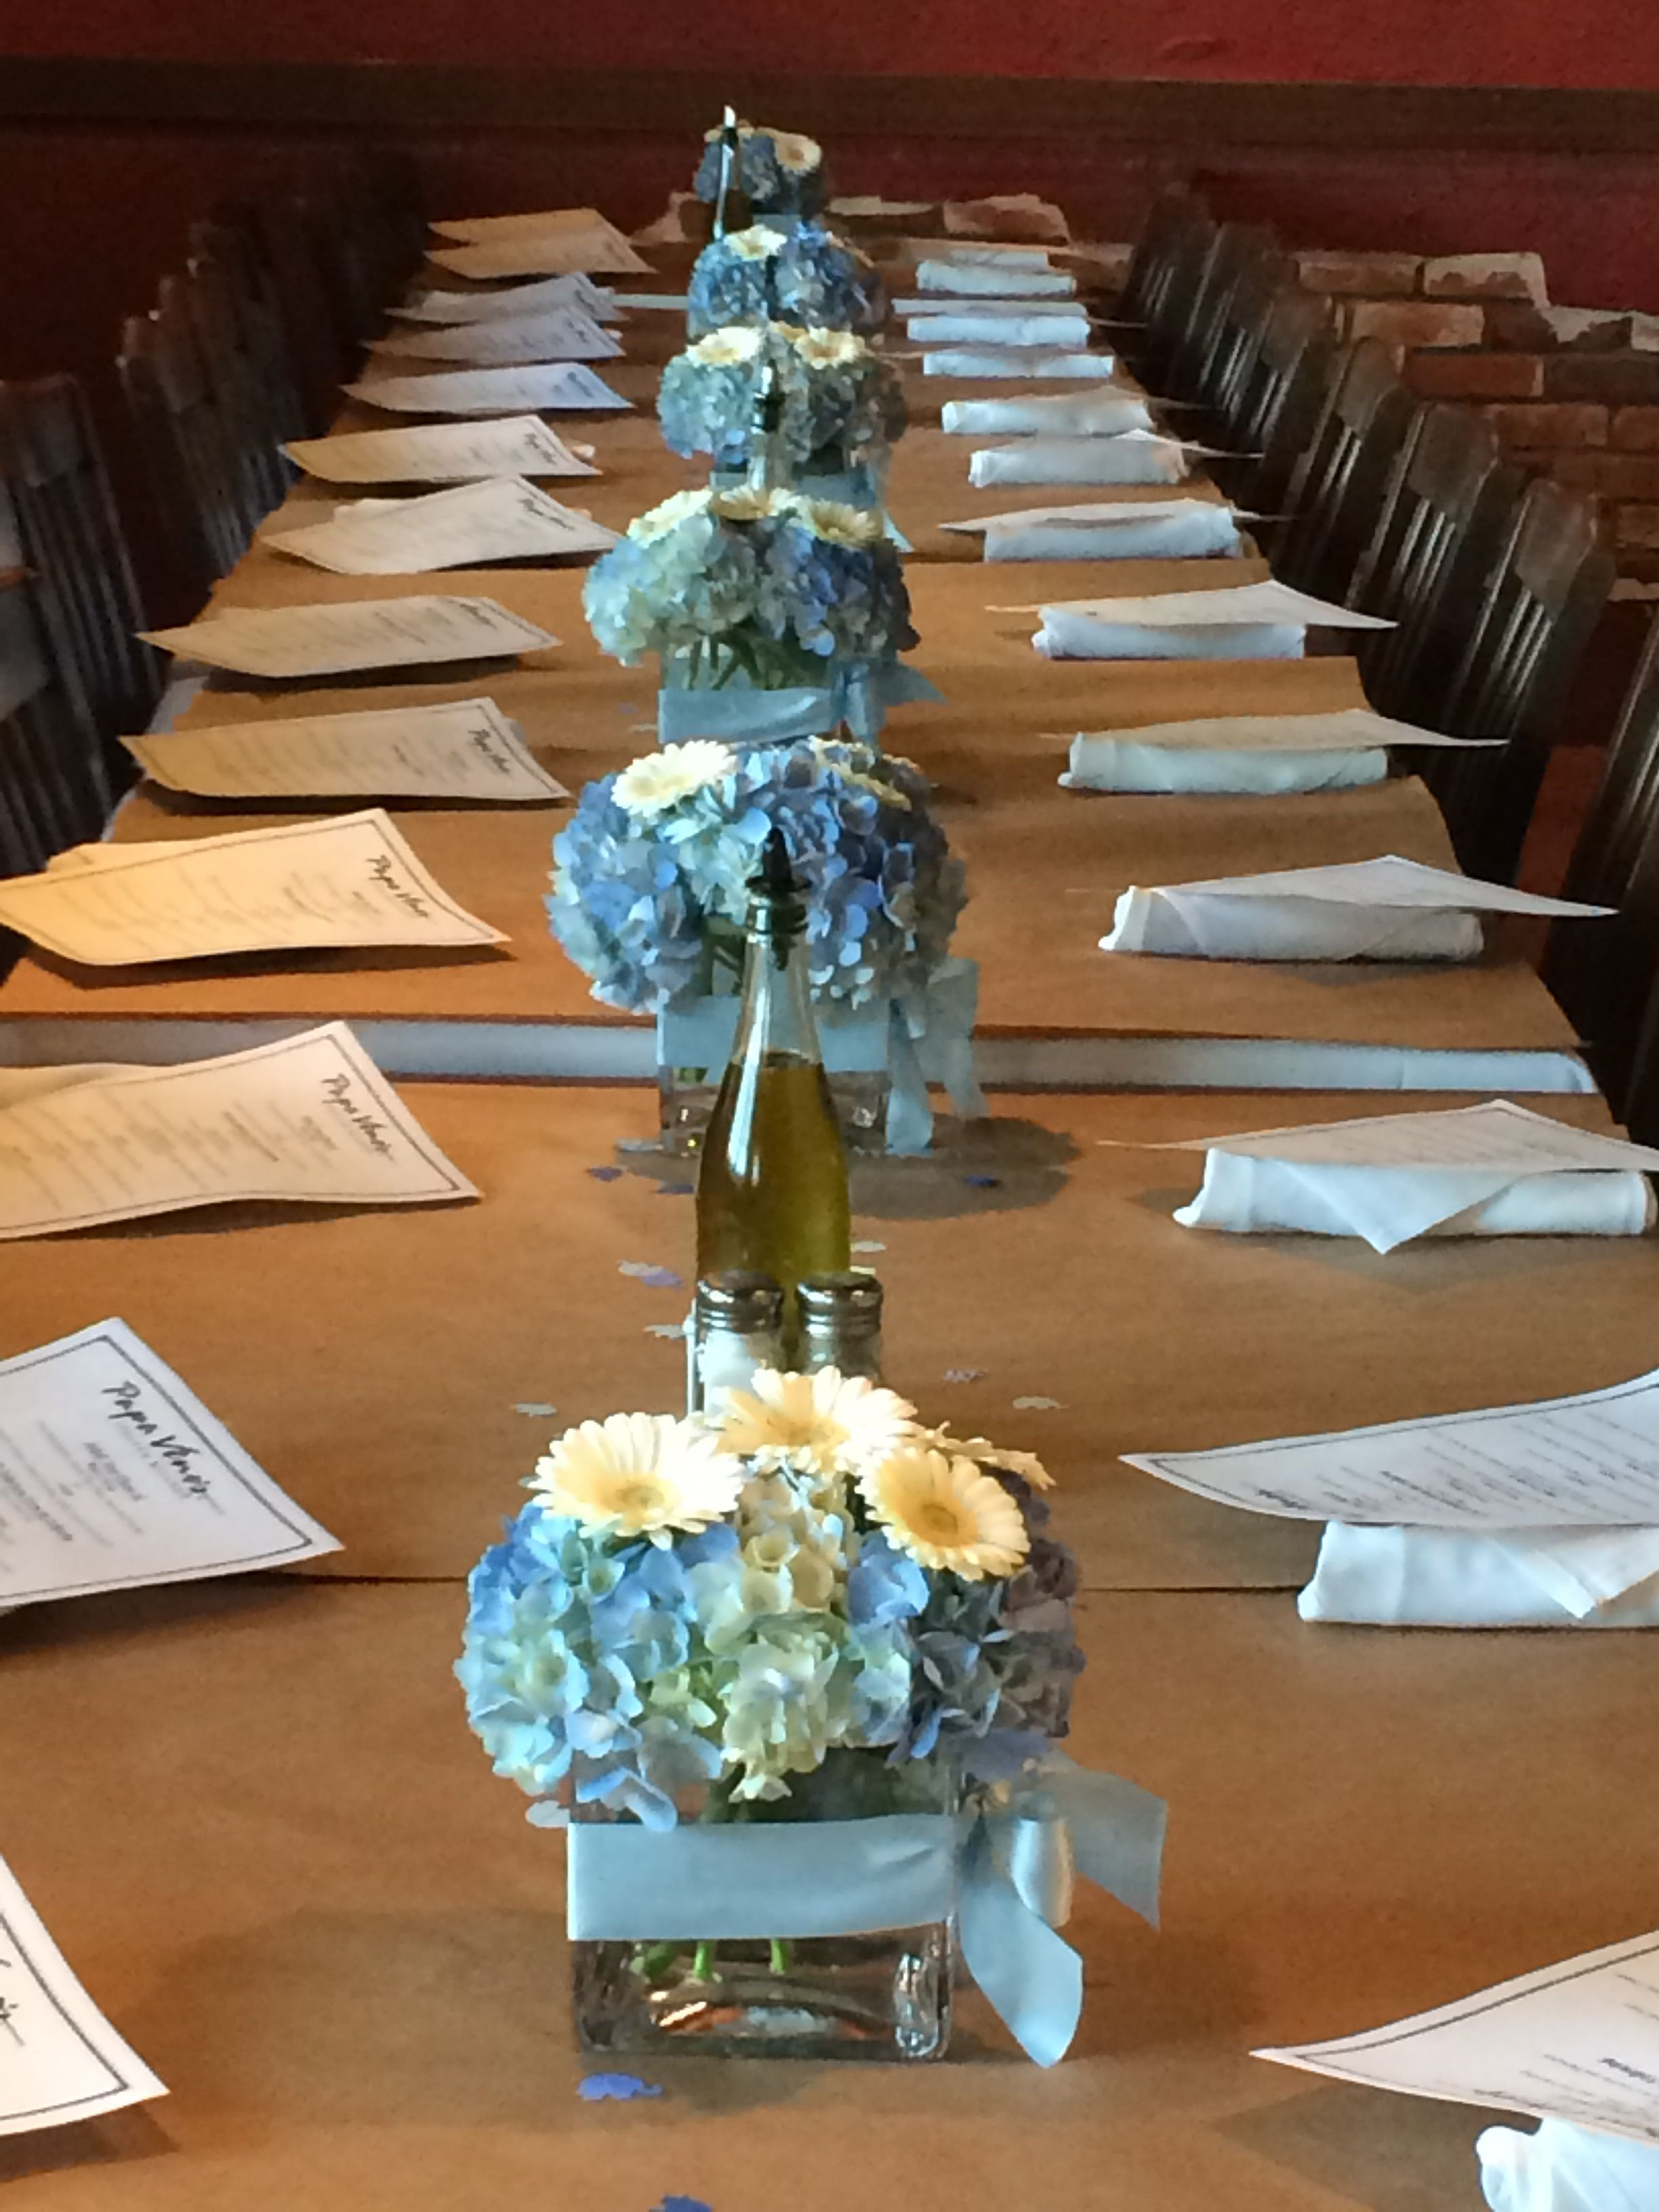 Its A Boy Centerpieces For Baby Shower 6 1 Cleverbumblebee